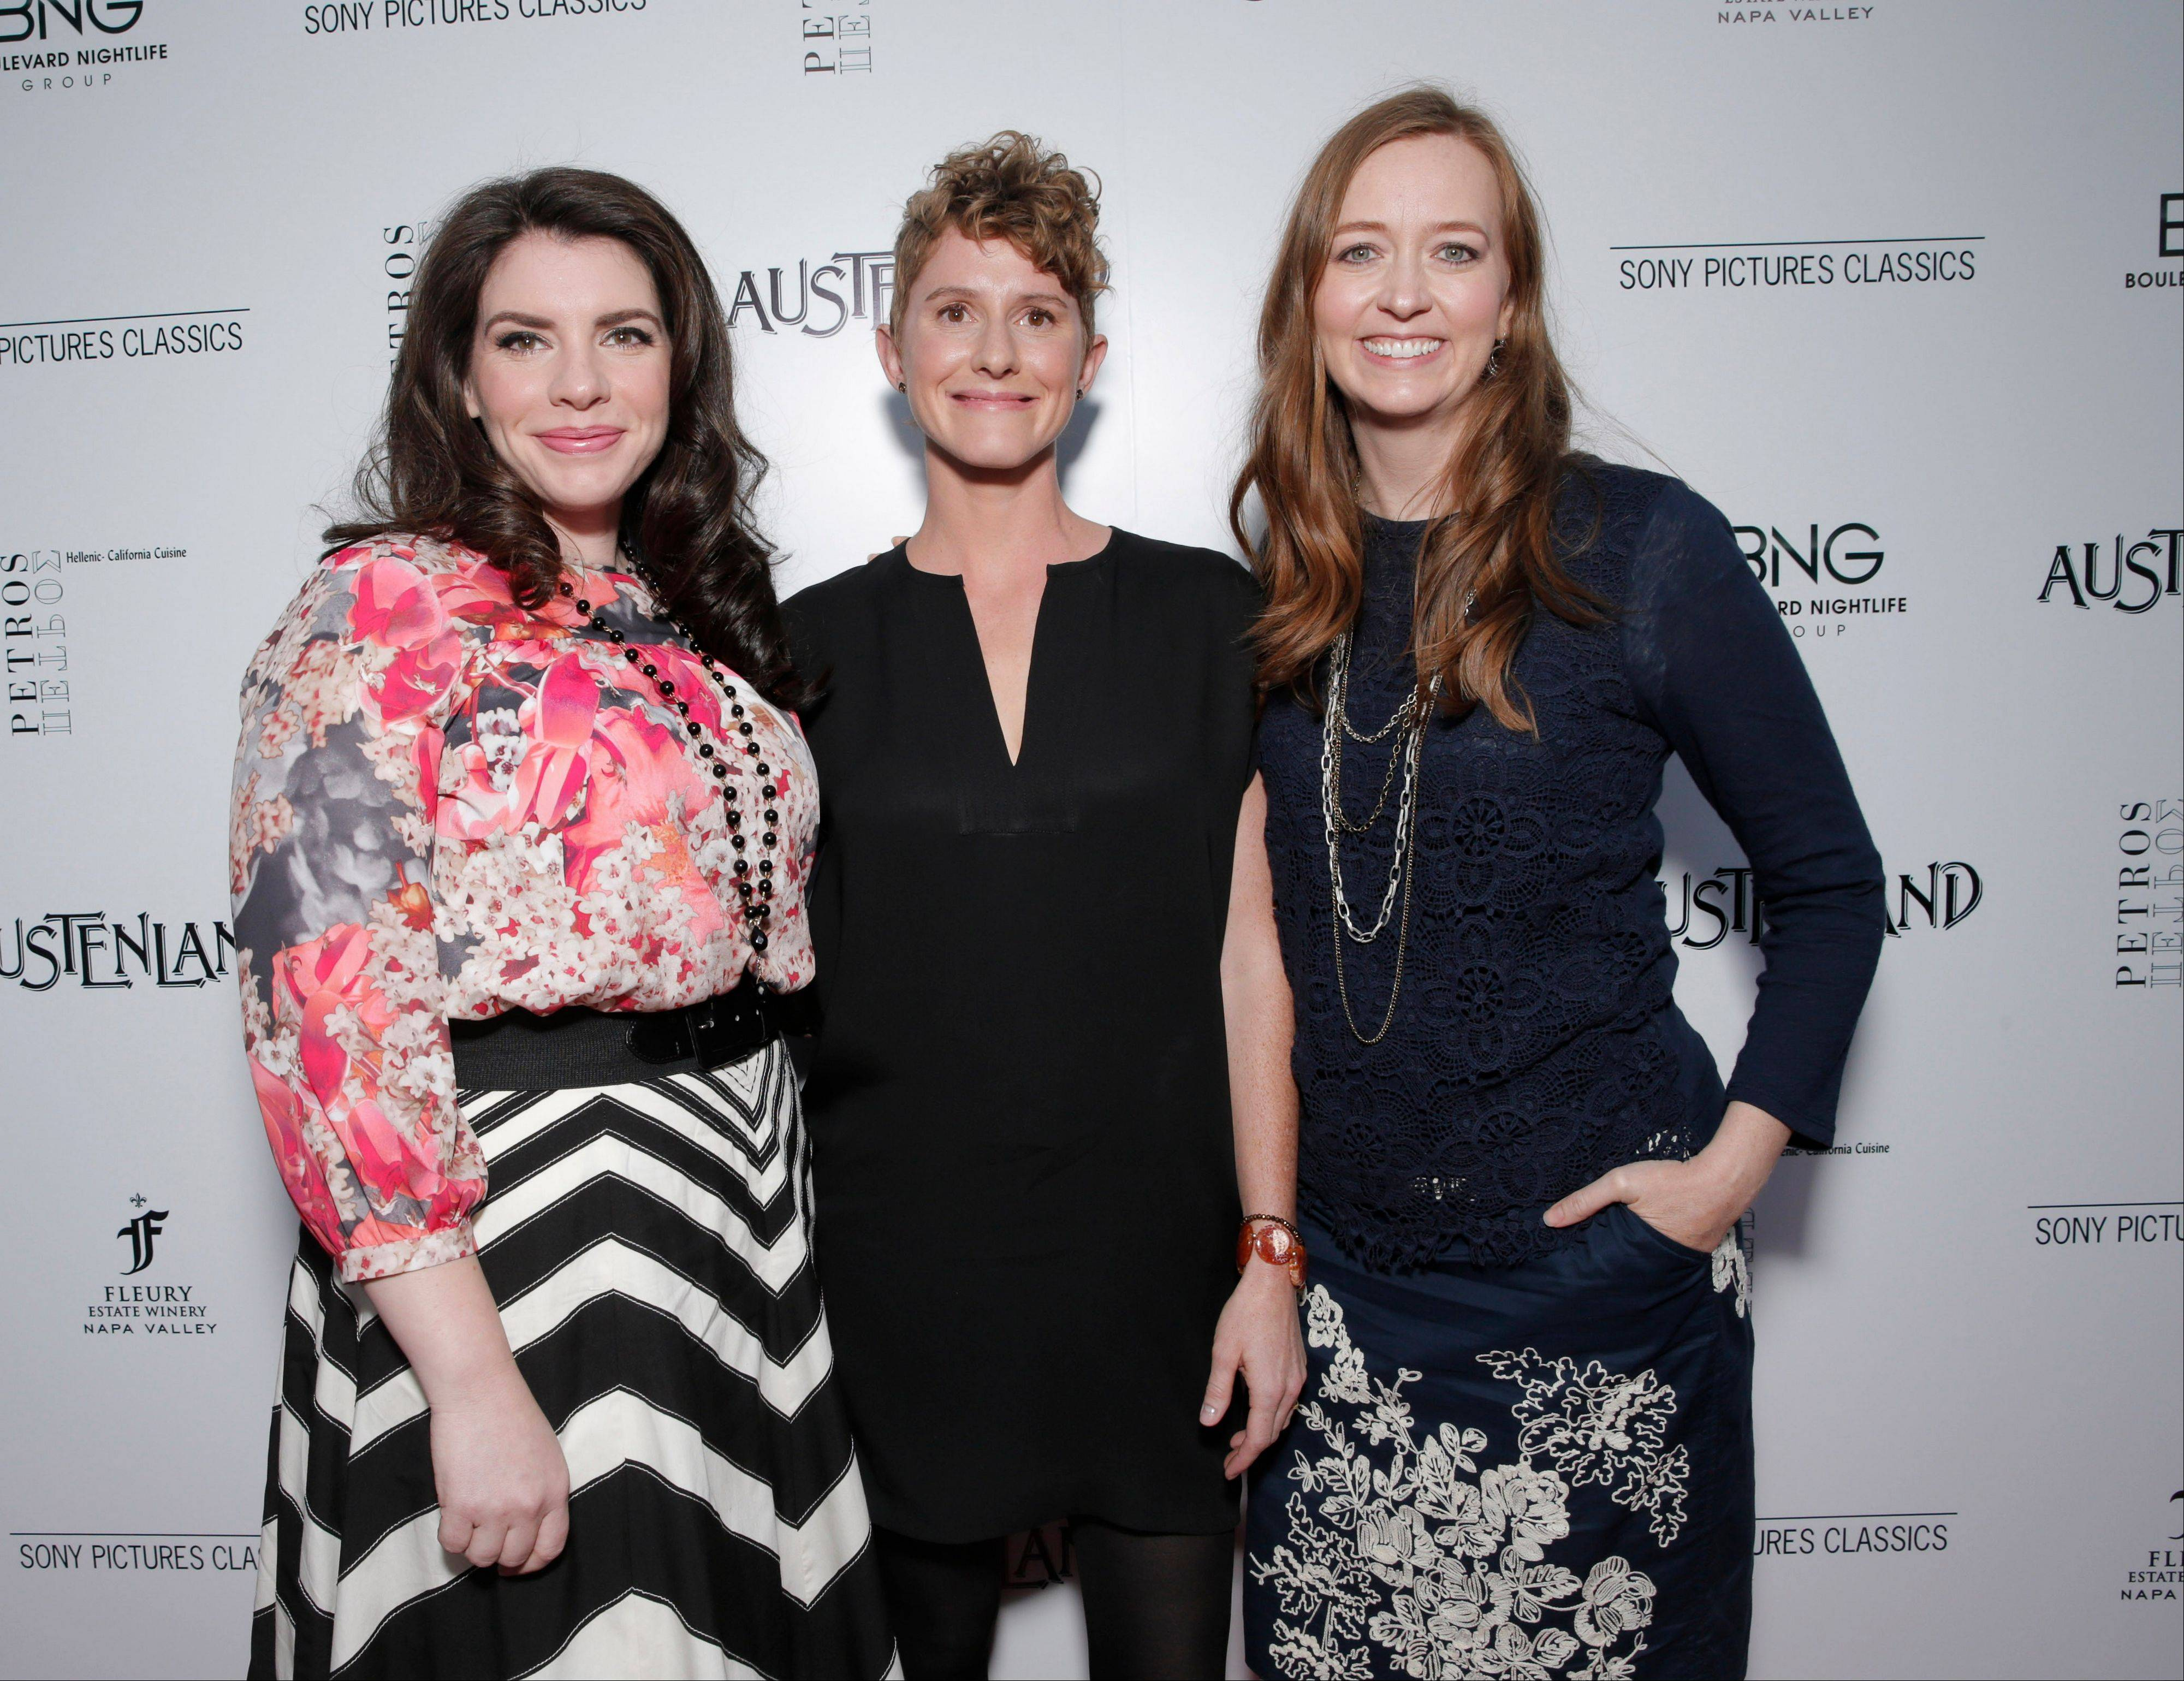 Executive producer Stephenie Meyer, left, director Jerusha Hess and writer Shannon Hale at the Los Angeles premiere for Sony Pictures Classics� �Austenland.� Meyer says she enjoyed the collaboration and socialization she experienced while producing the movie.